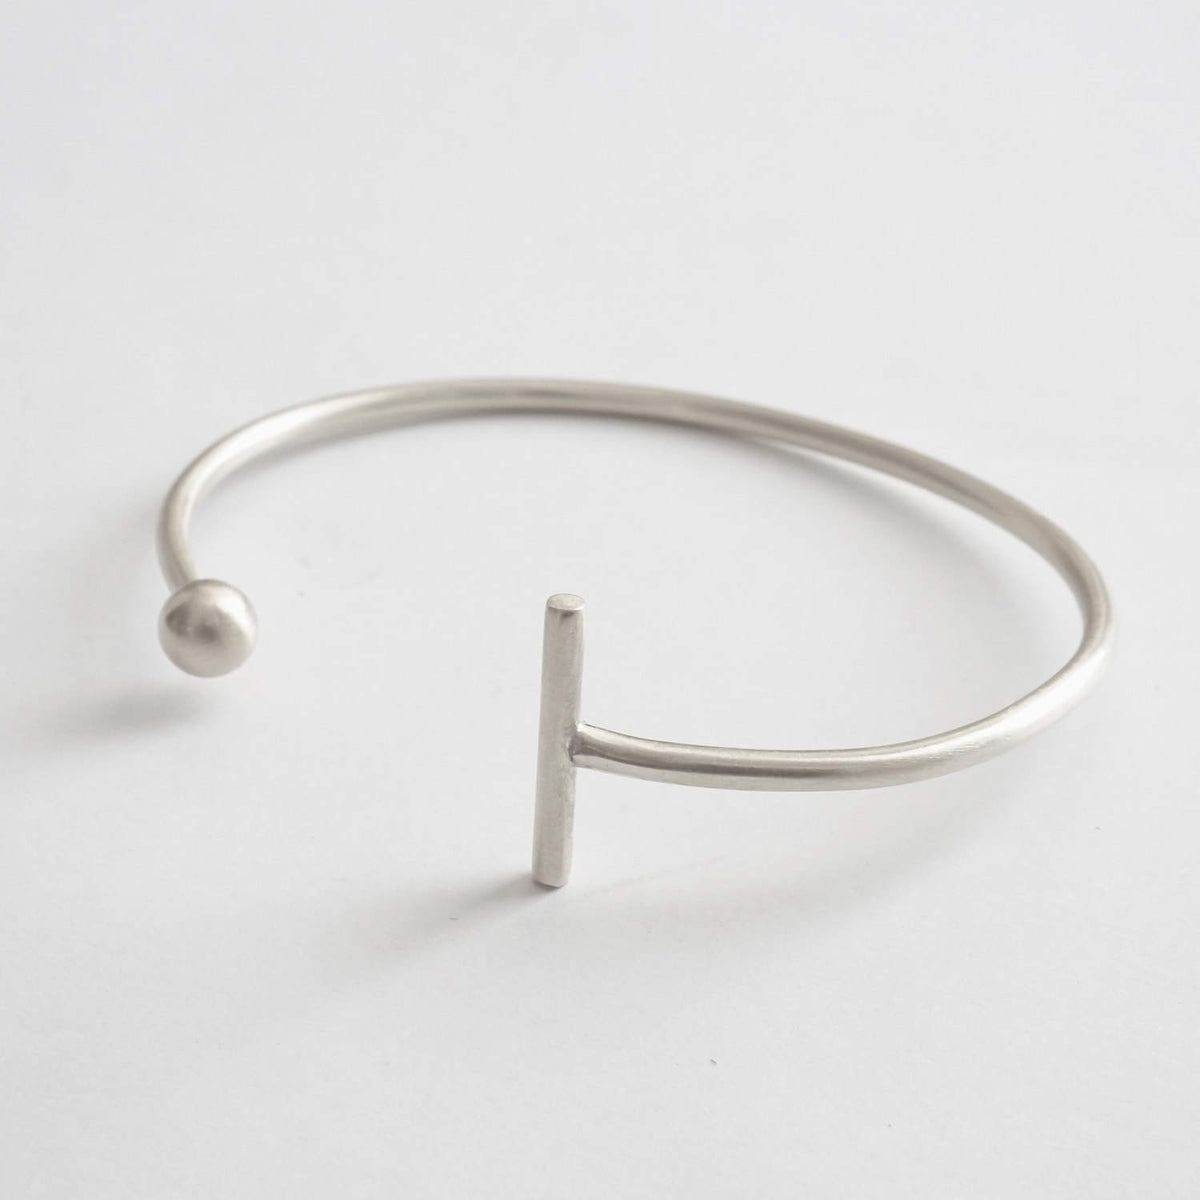 This Hand-Crafted Minimalist Bar and Ball Cuff Bracelet Is Great For The Office or A Night On The Town - 0274 - Virginia Wynne Designs